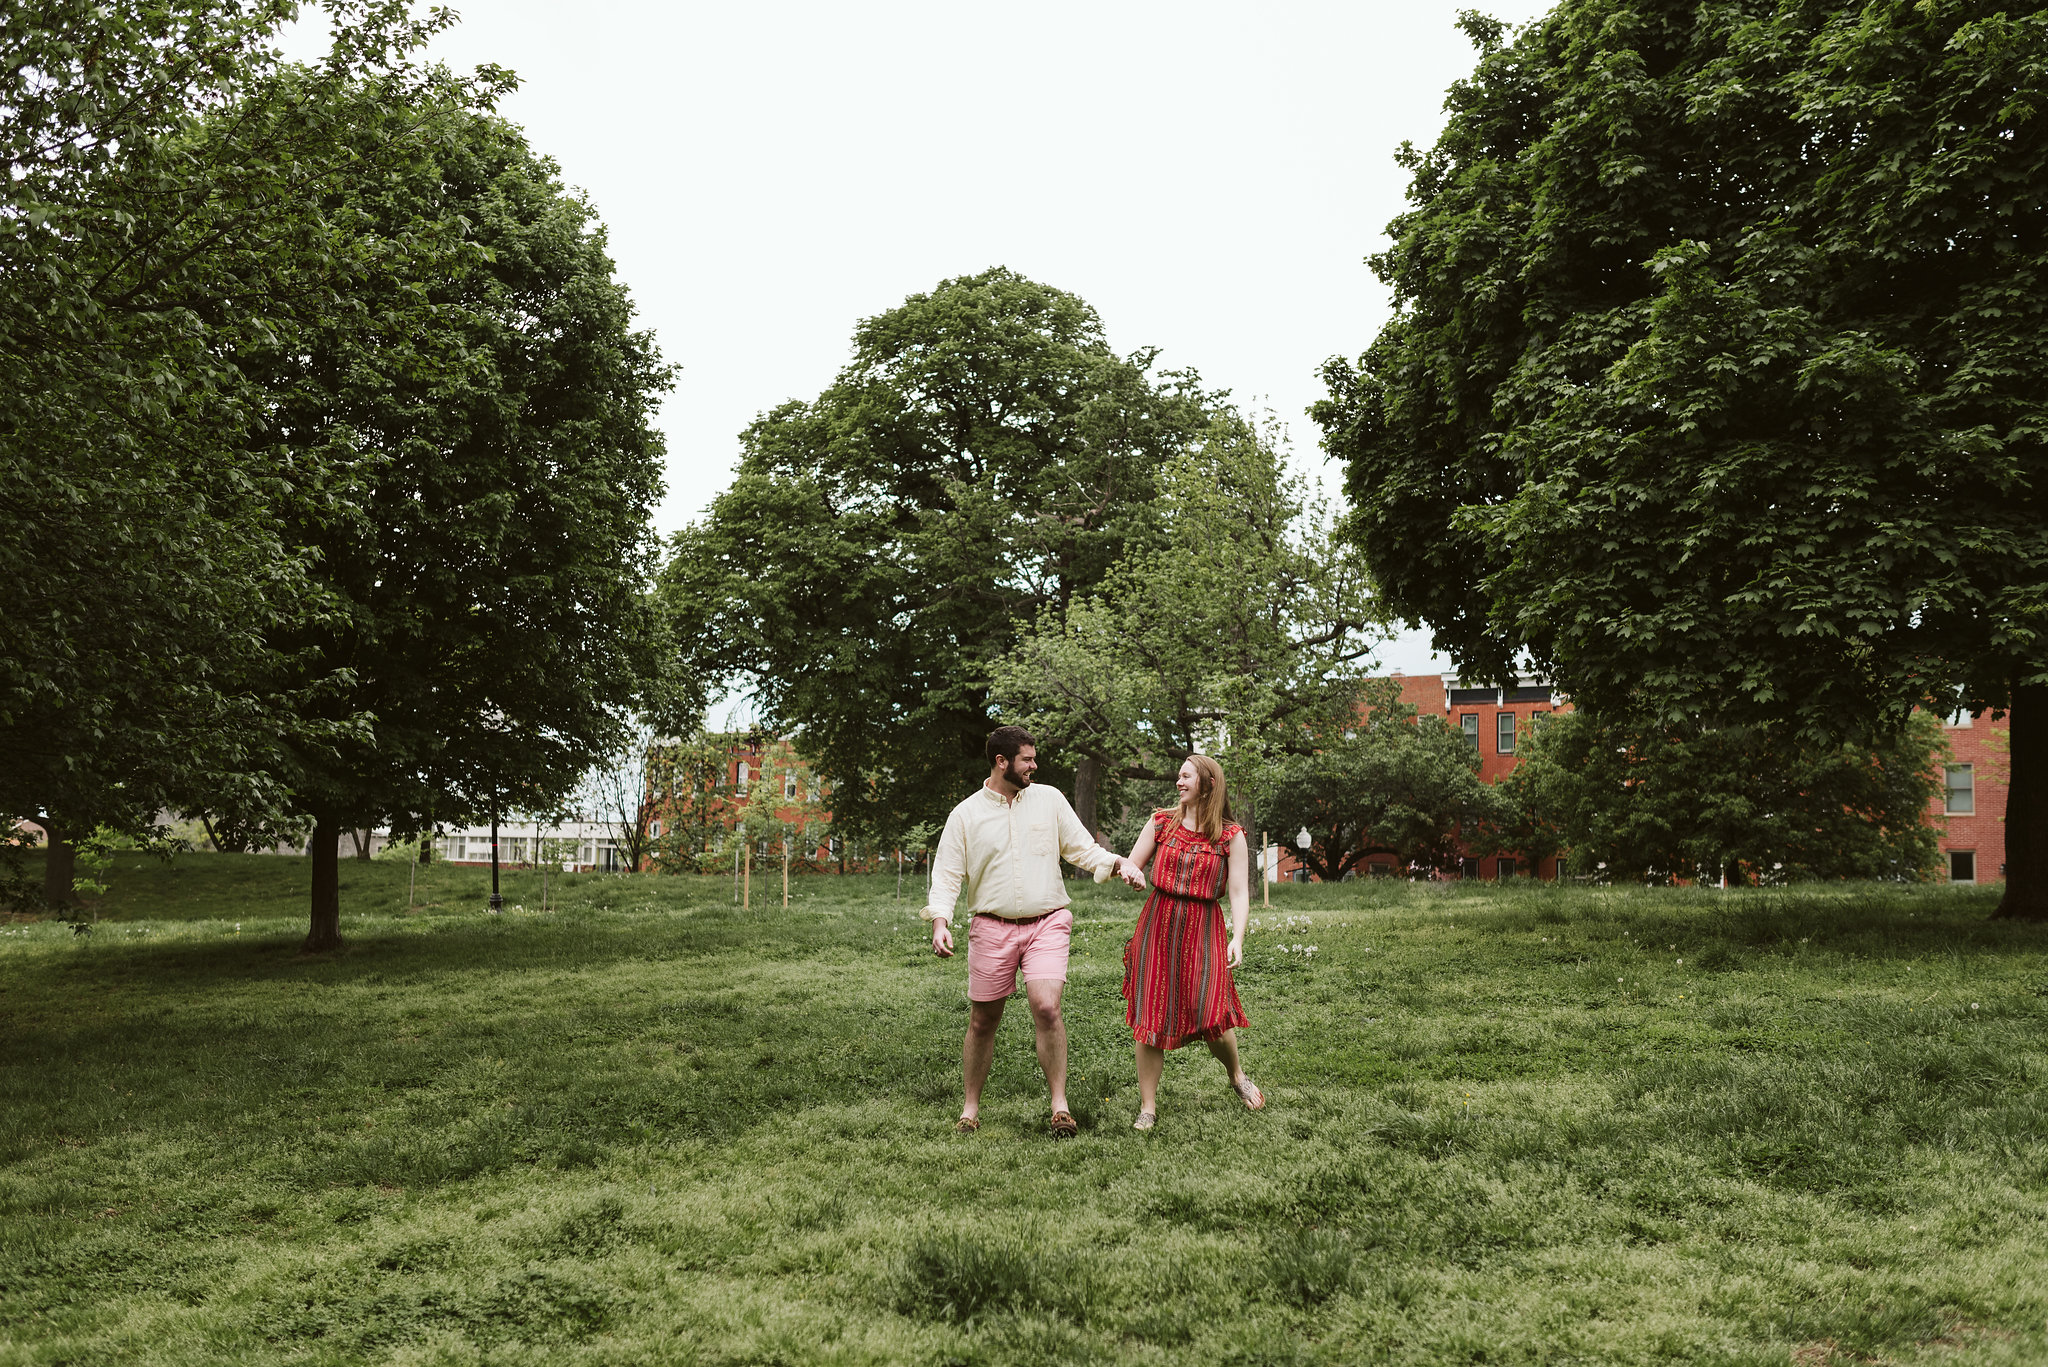 Engagement Photos, Patterson Park, Baltimore, Maryland Wedding Photographer, Casual, Fun, Nature, Couple Playing Together in a Field, Holding Hands